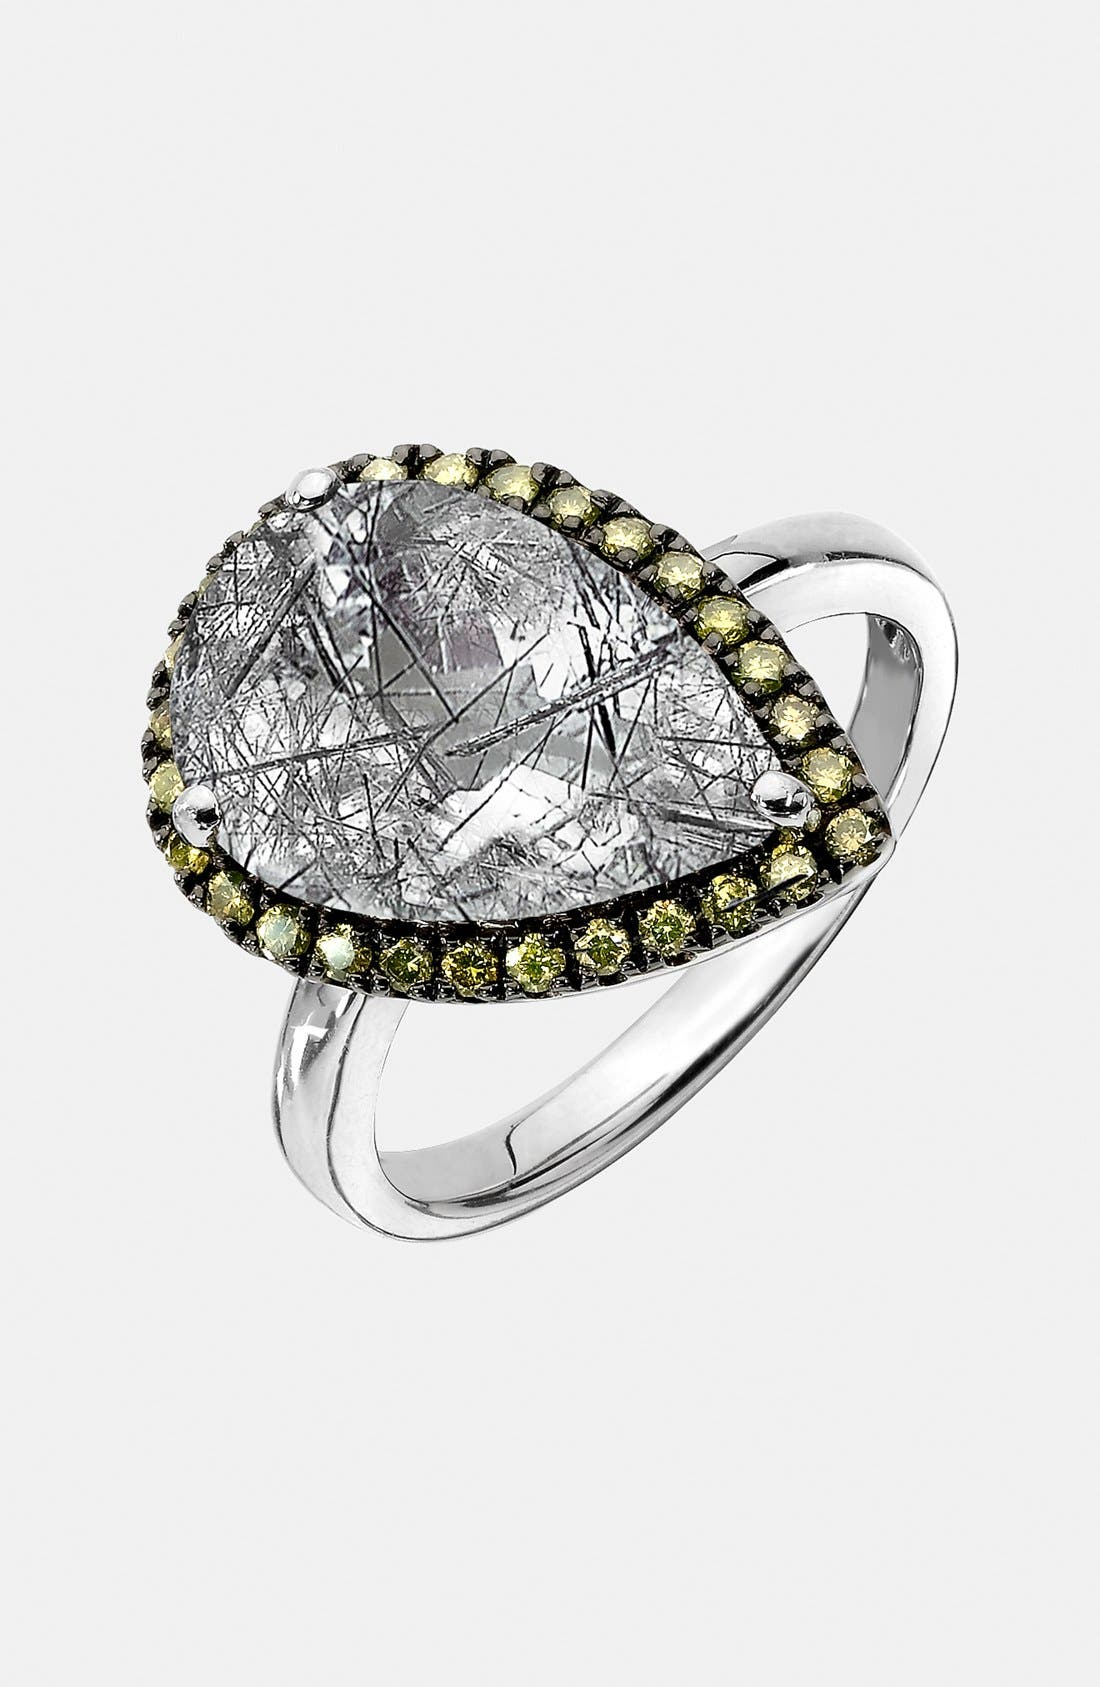 Main Image - Whitney Stern Quartz & Canary Diamond Cocktail Ring